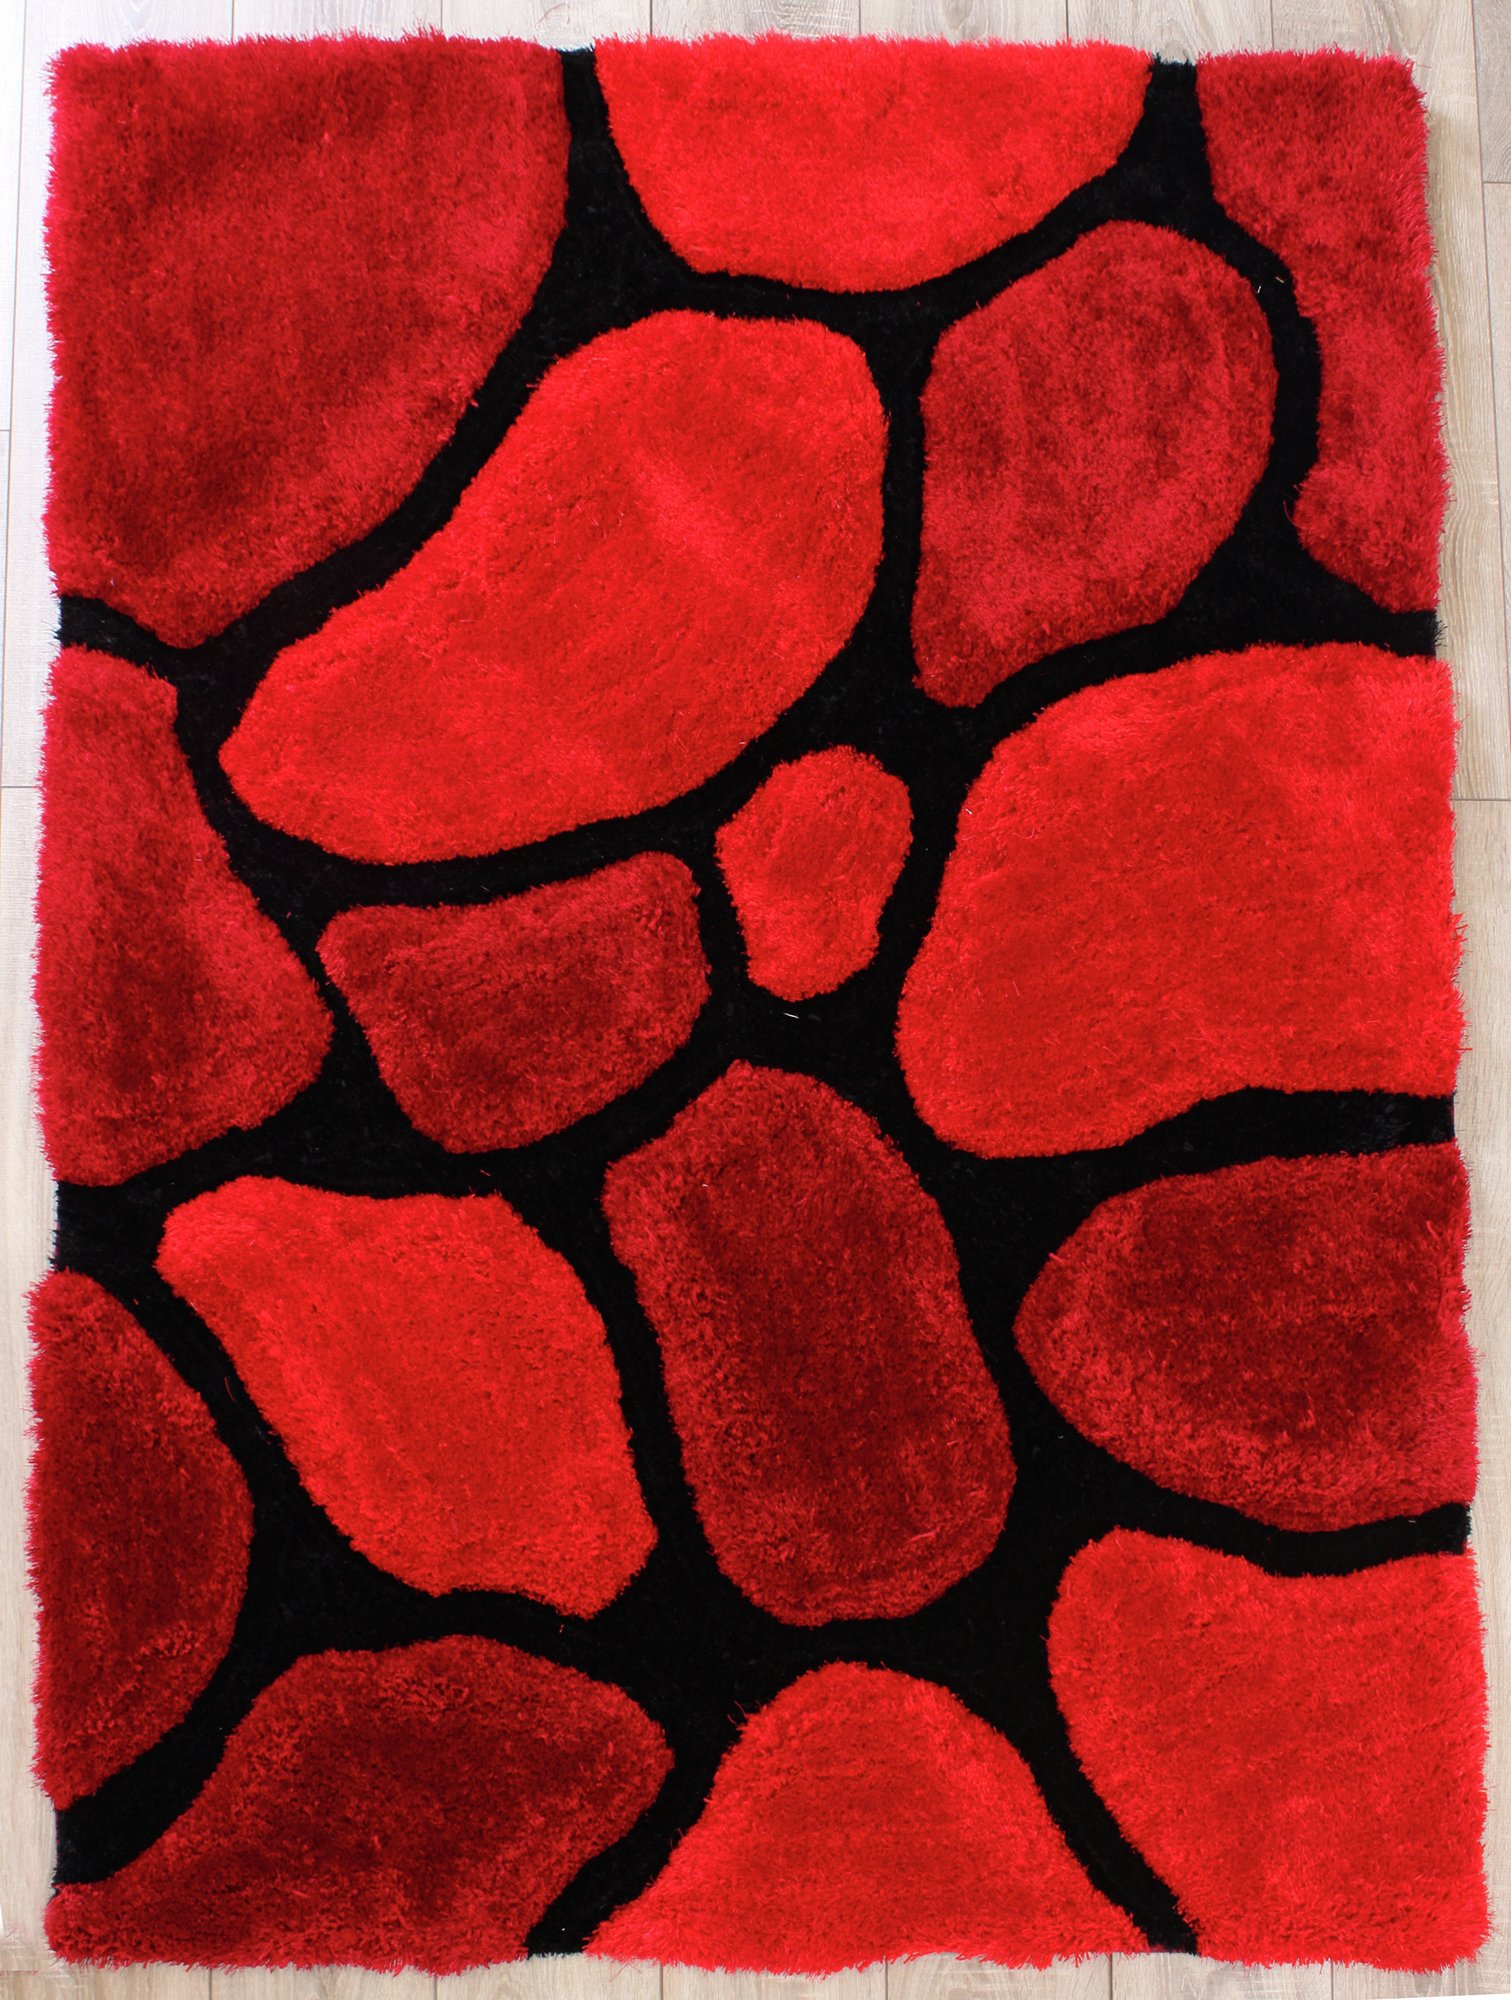 3D Stepping Stones - 160x225cm - Red.